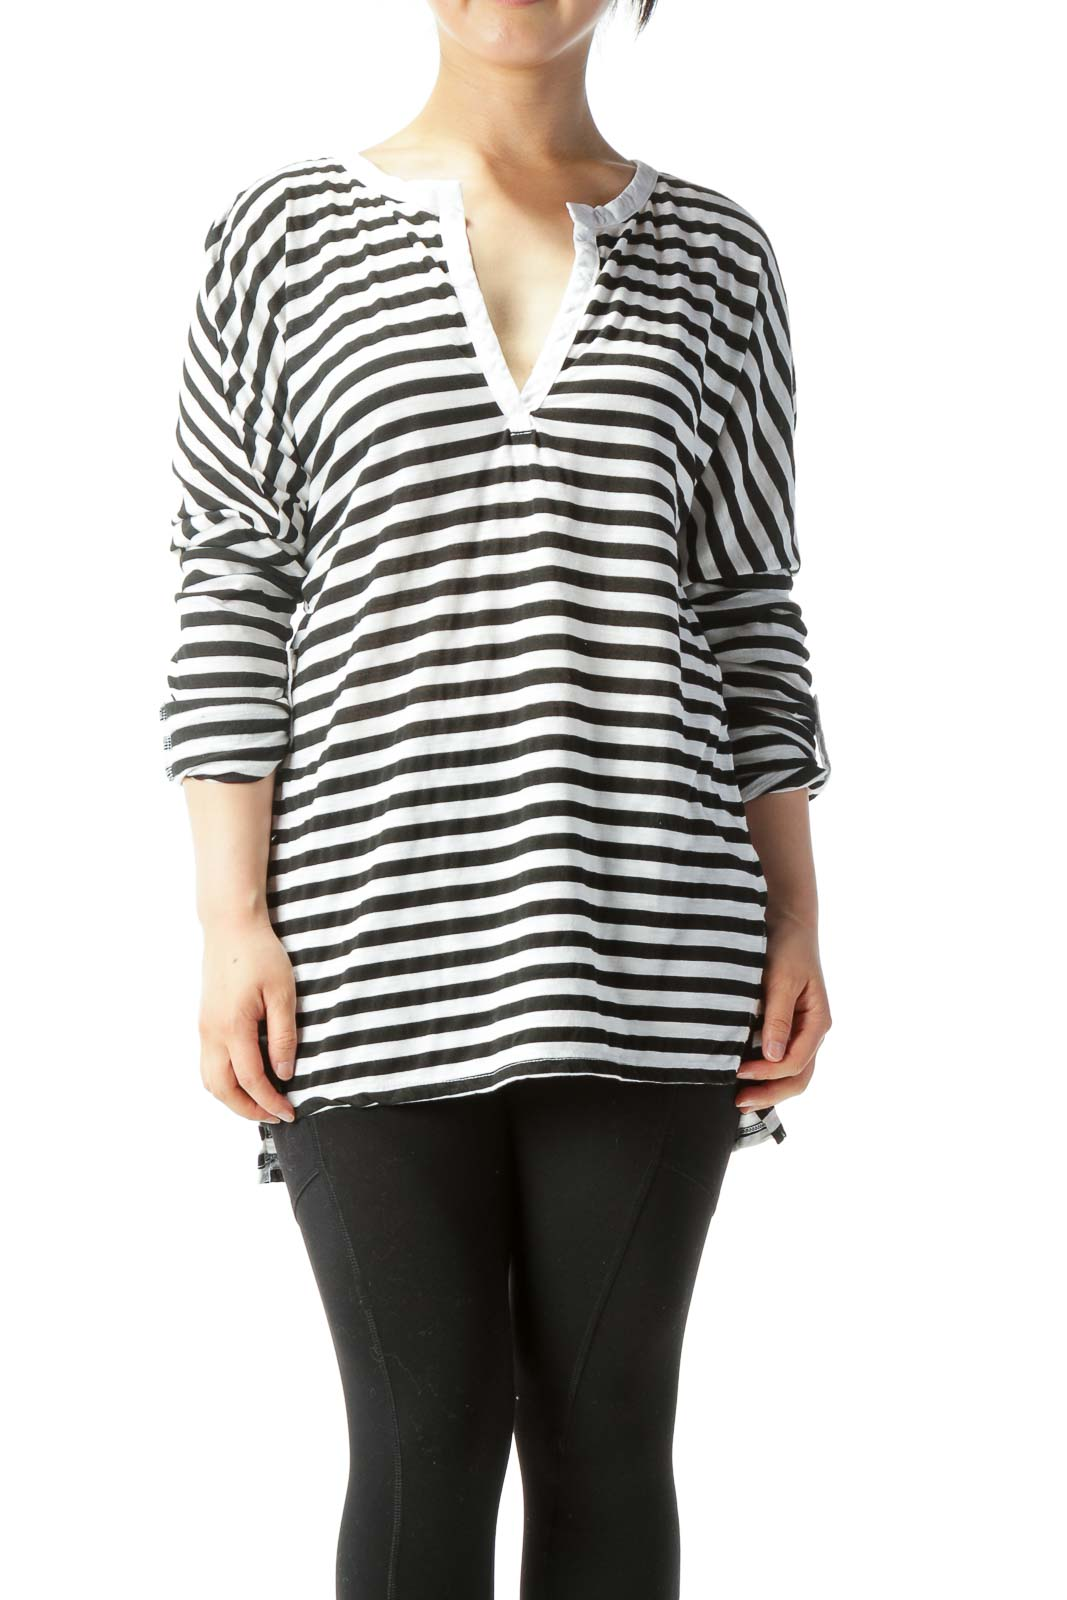 White & Black Striped Long-Sleeve Rolled-Cuff Knit Top Front